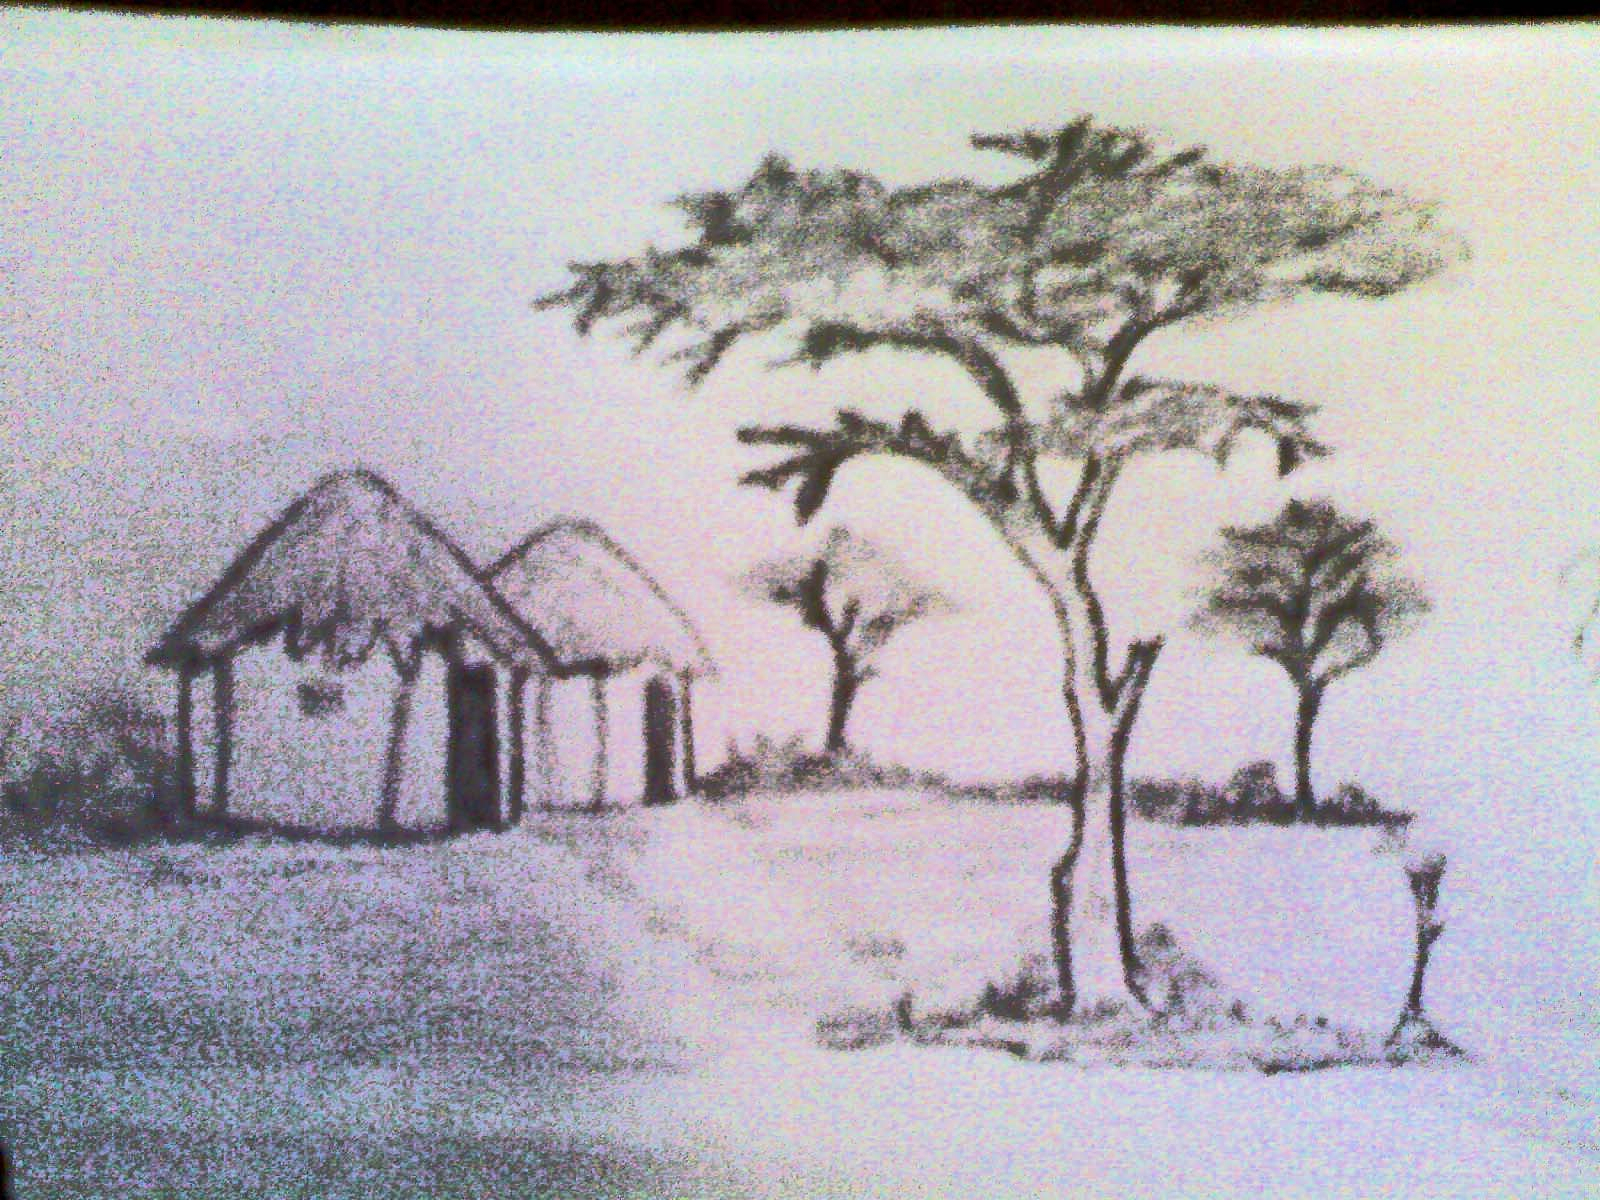 1600x1200 indian scenery drawing village scenery pencil drawing pencil